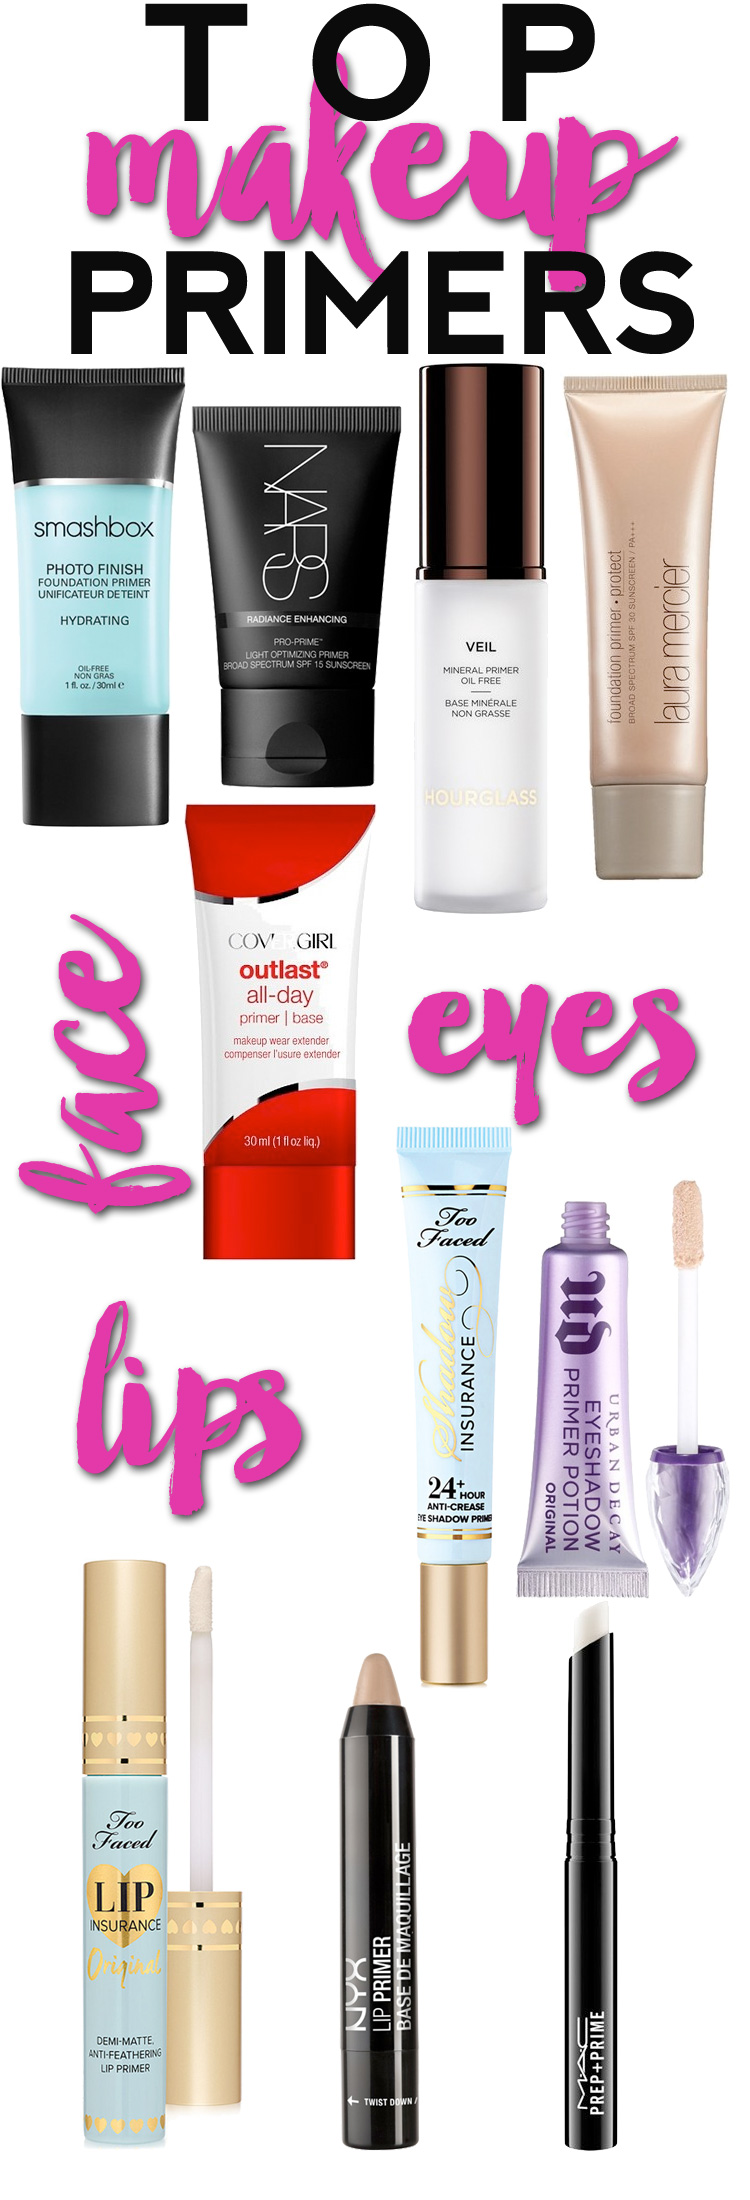 Top Makeup Primers — The best makeup primers for your face, lips and eyes.